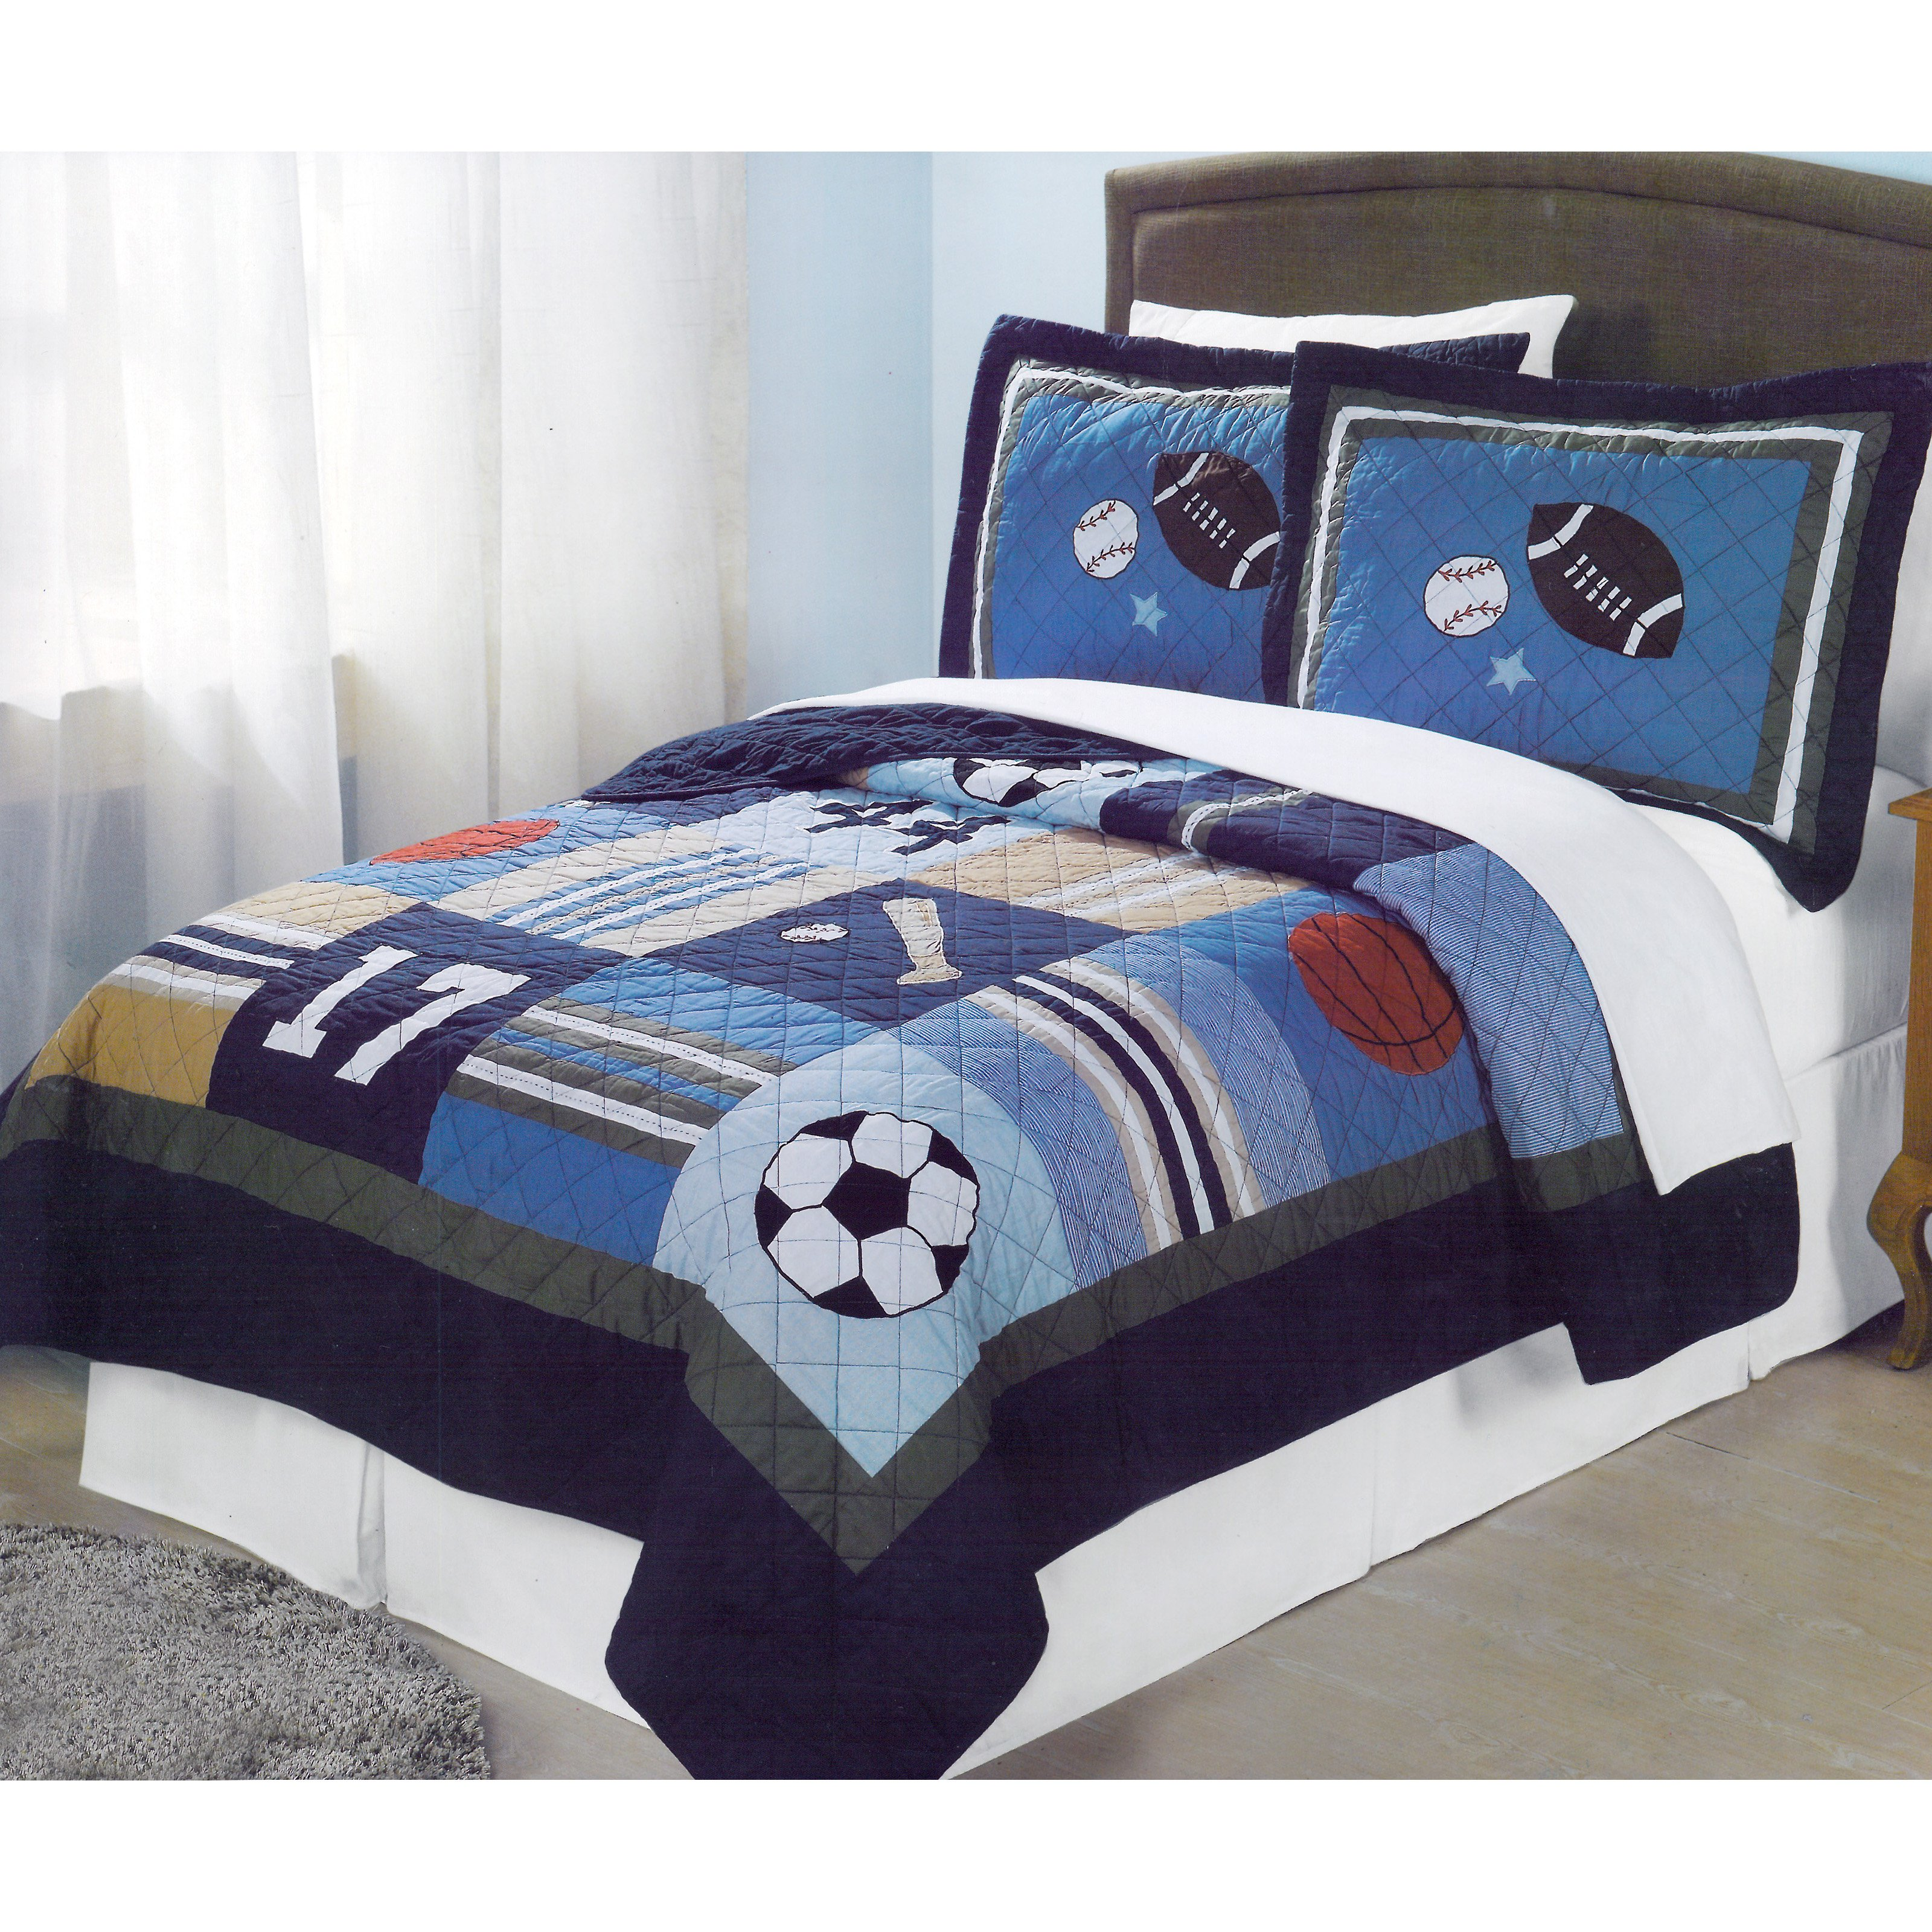 mint quilt navy quilts pin baby and grey nursery for megan boy billy room herringbone s